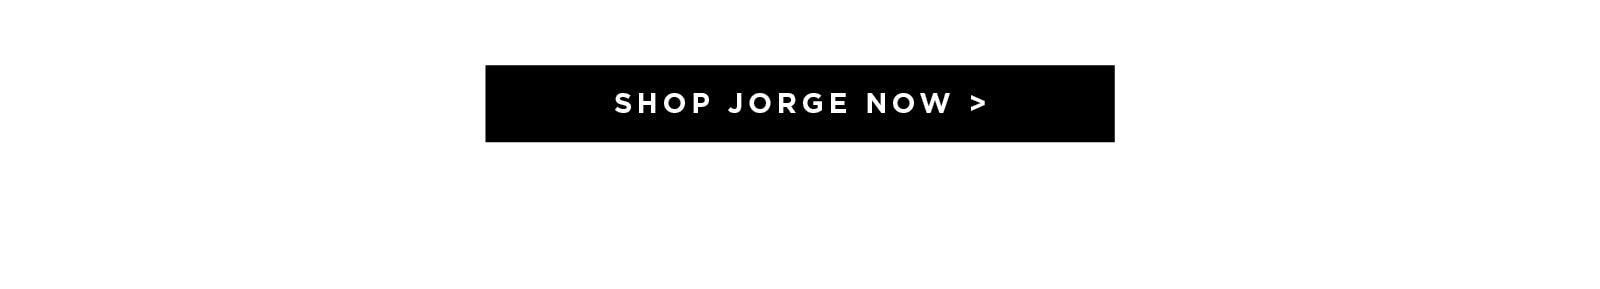 Shop Jorge now